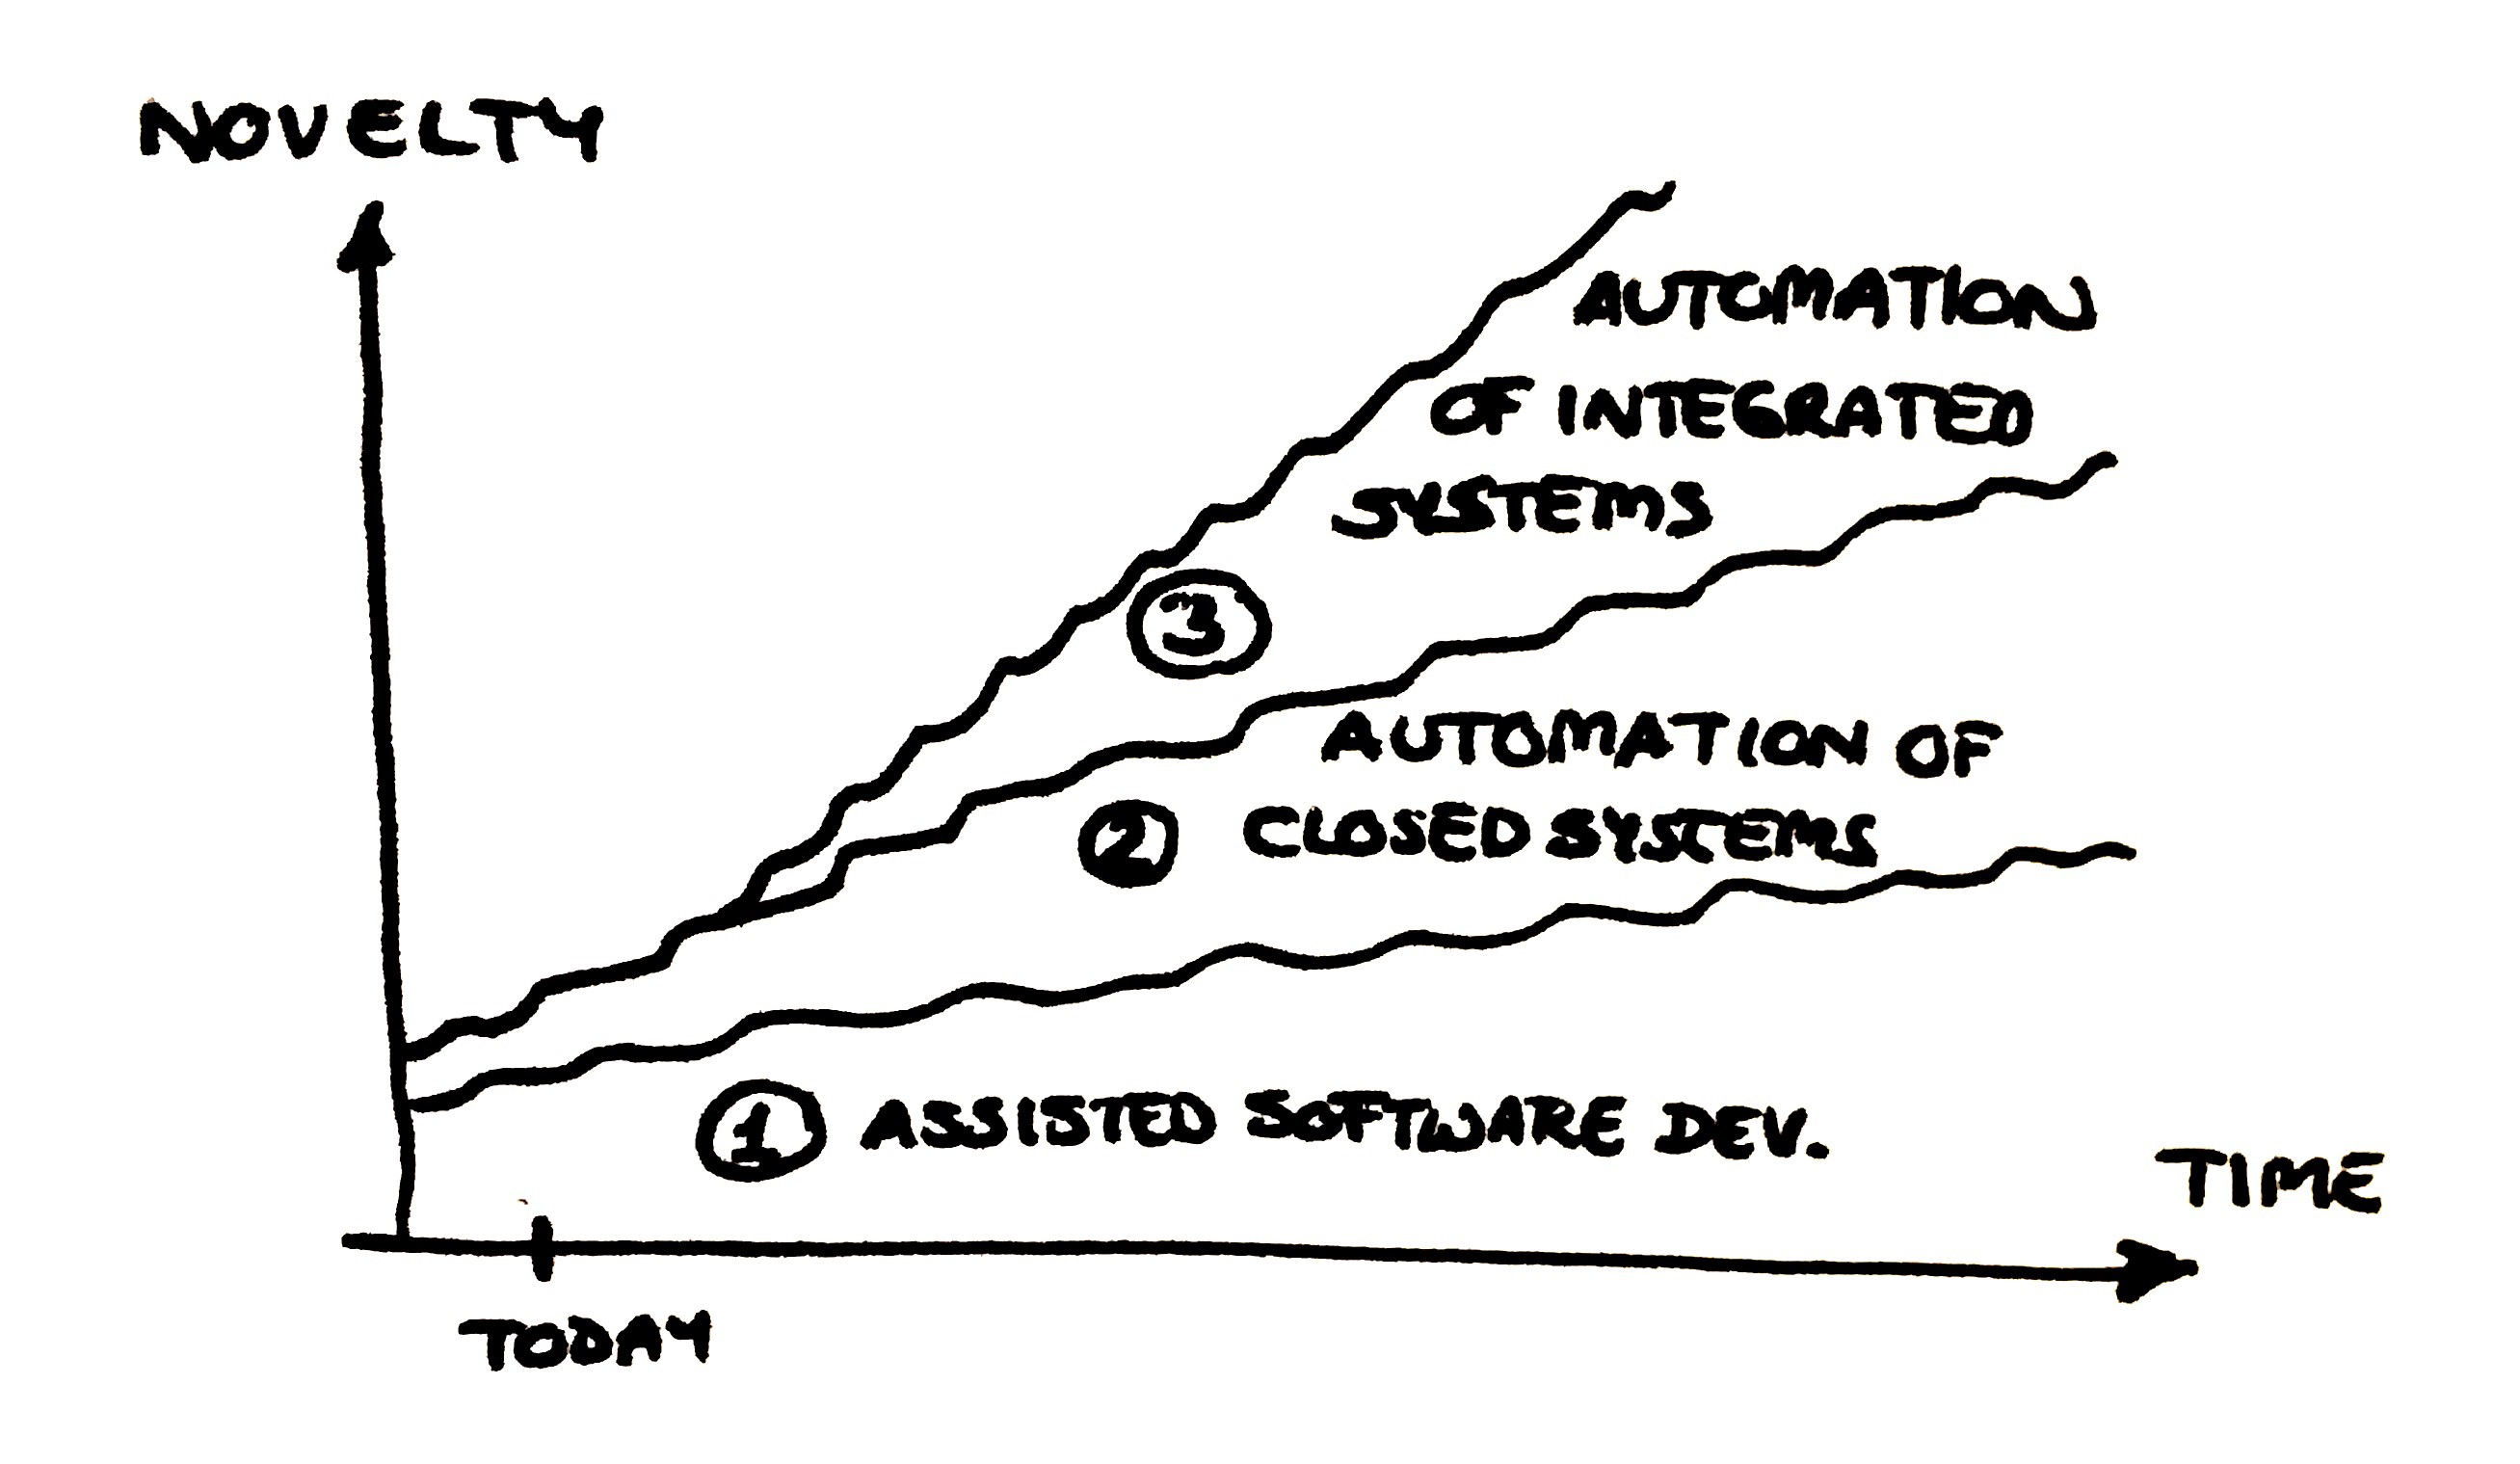 Development of the three areas over time. Today, the first two areas are being automated, but not the third one.